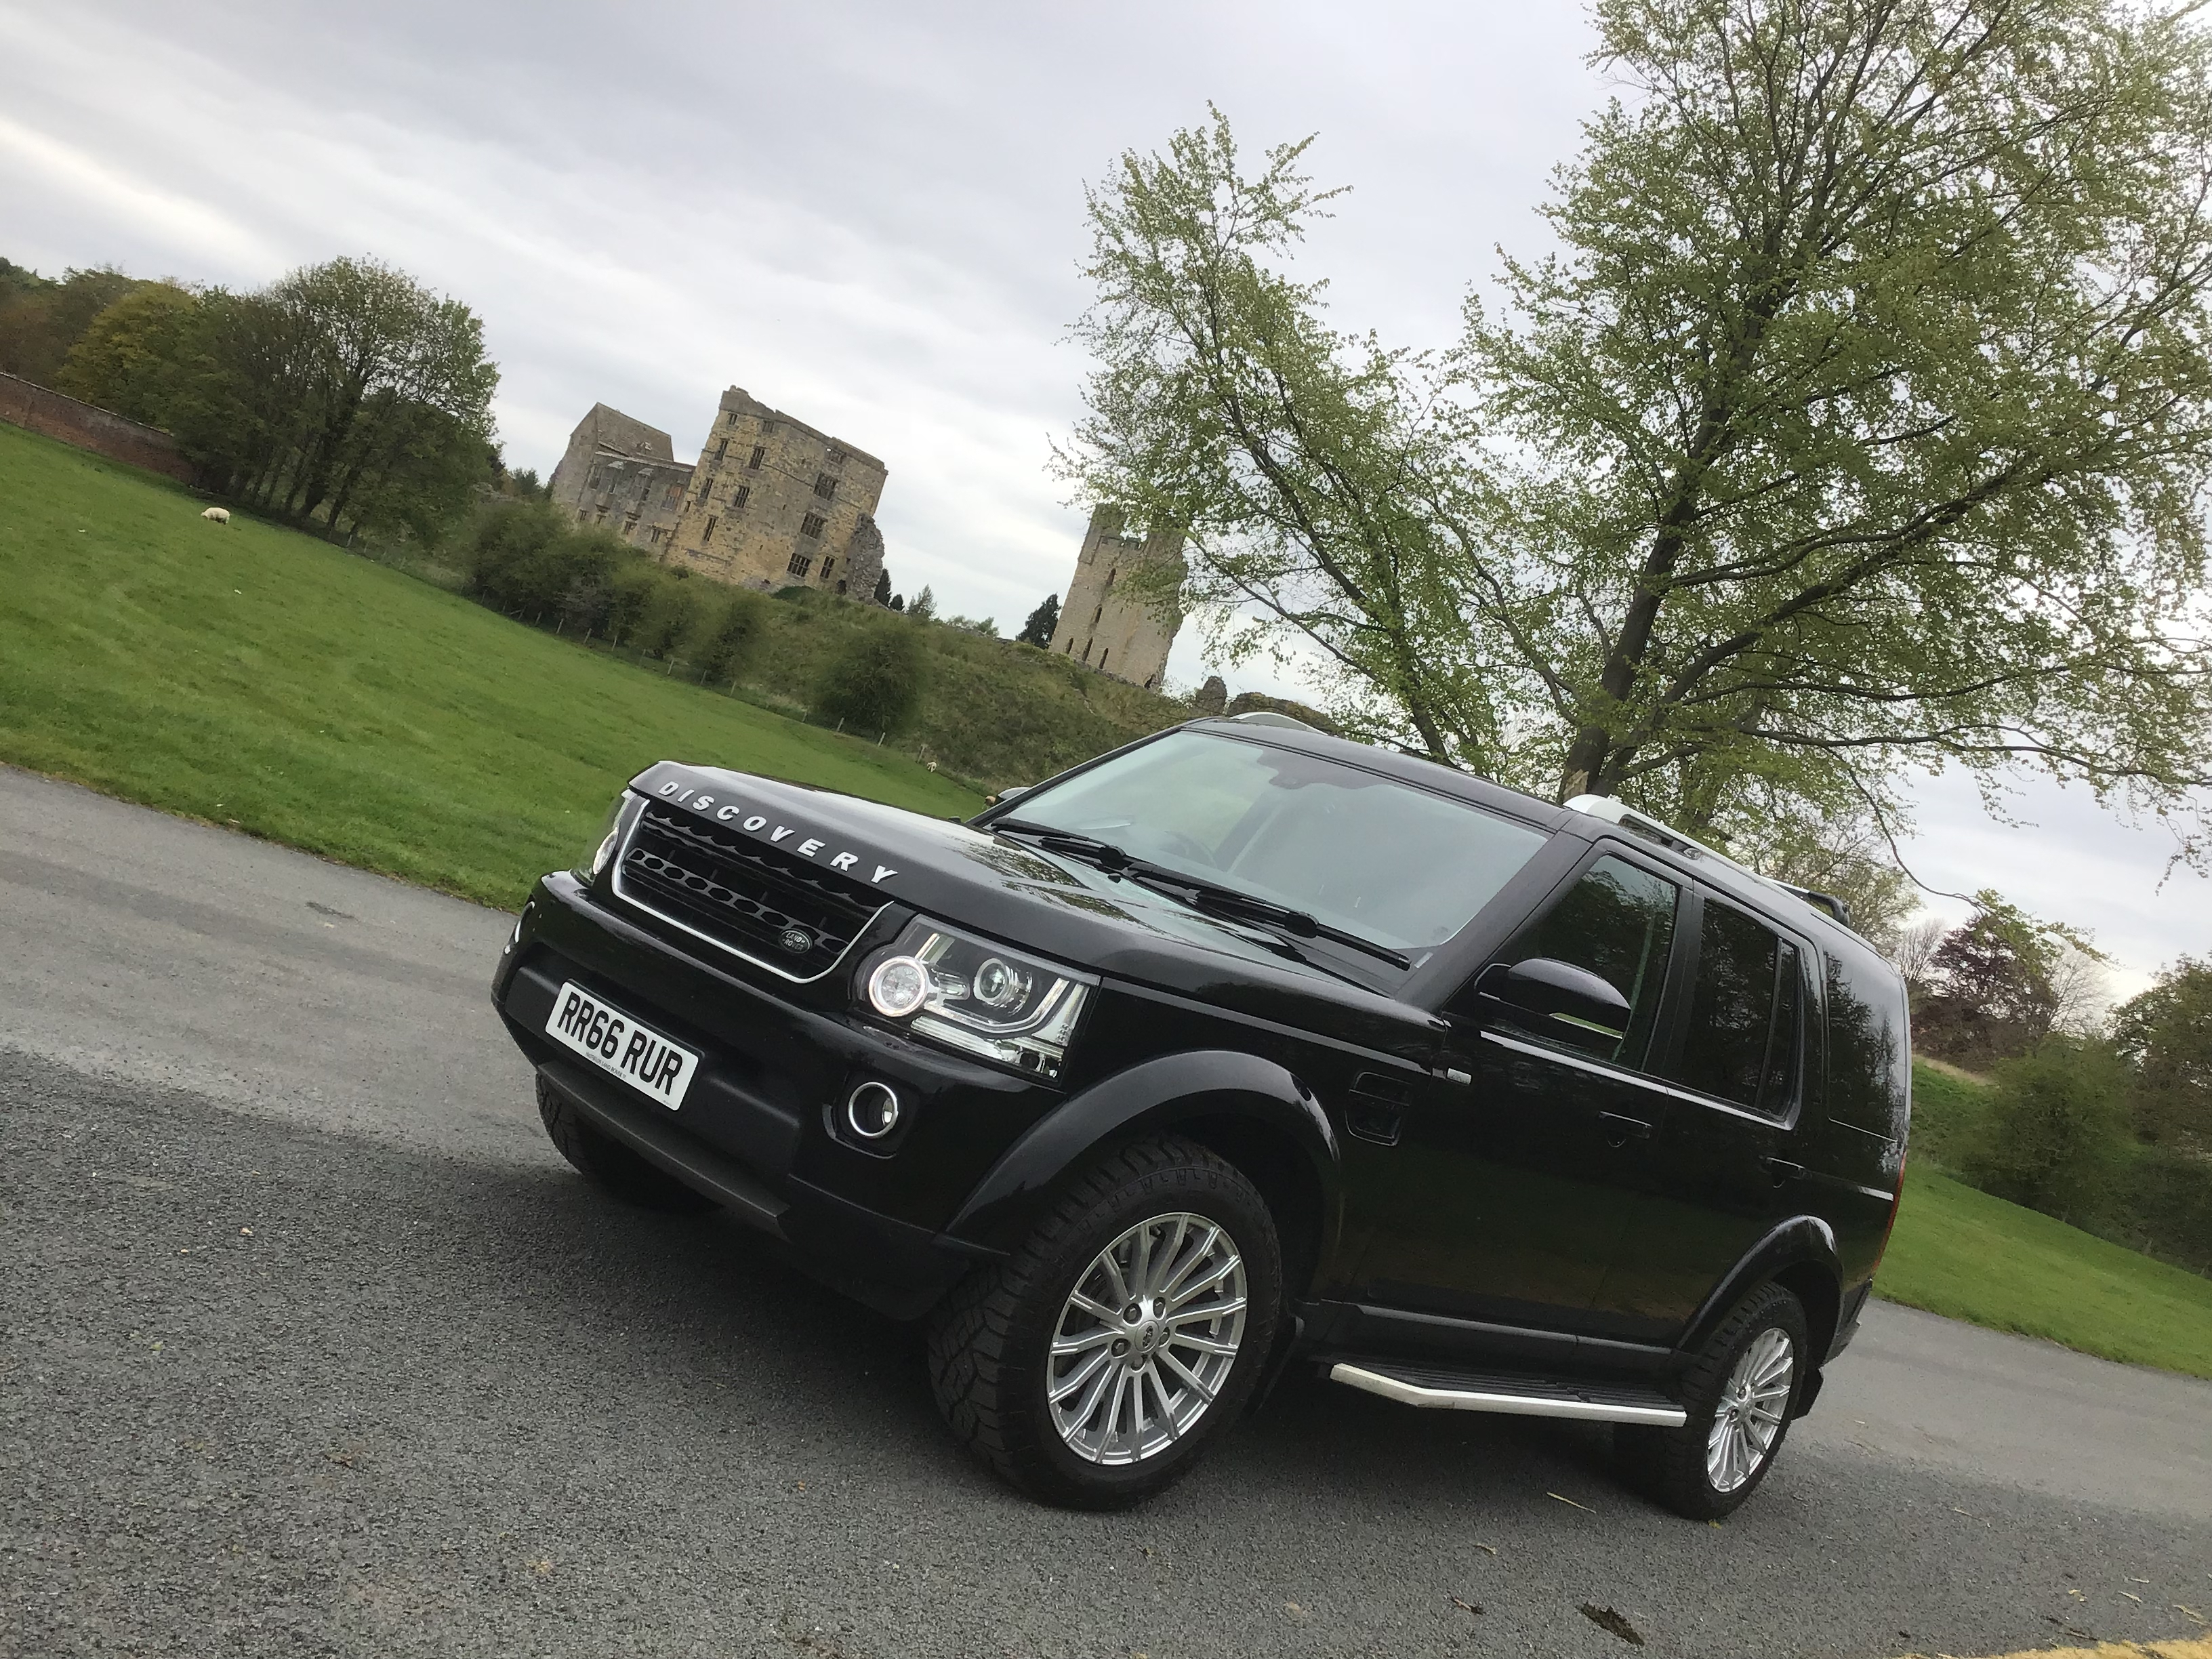 Landrover Discovery at Duncombe Park, Helmsley, North Yorkshire